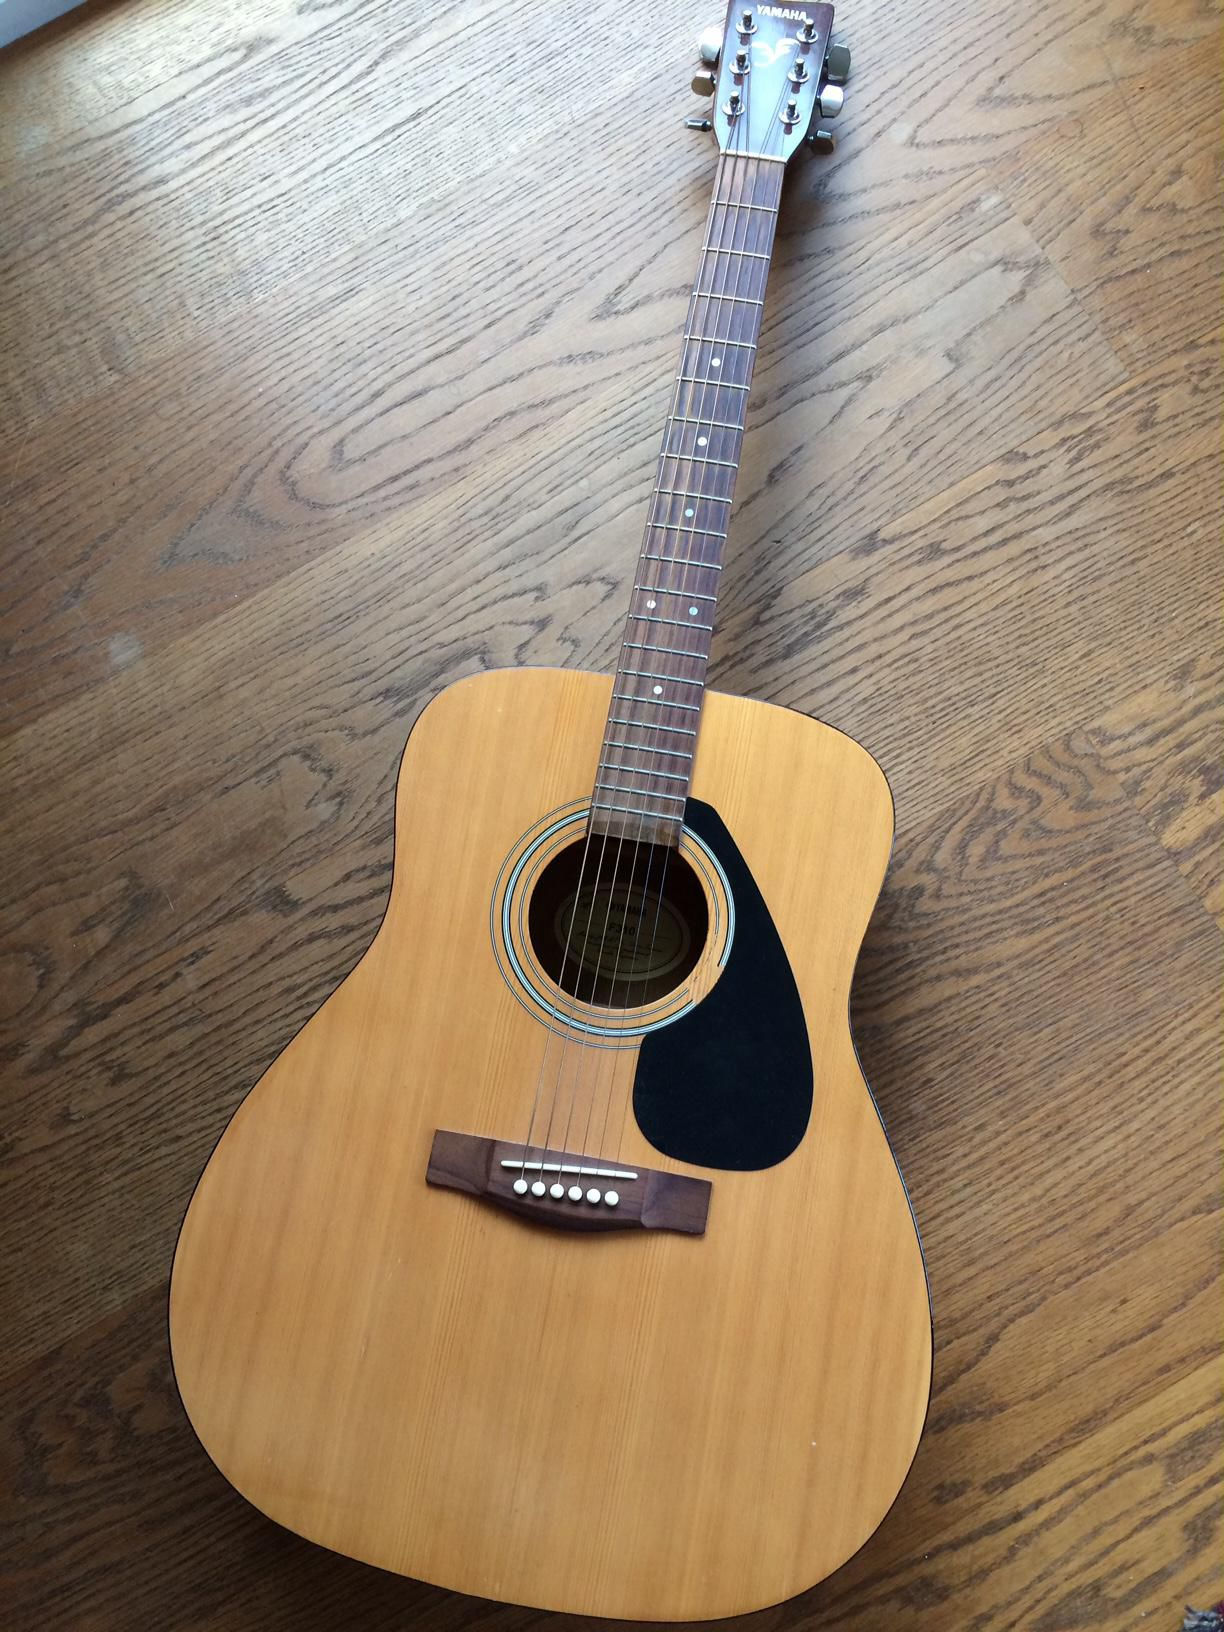 Yamaha acoustic guitar f310 600hkd for Yamaha classic guitar